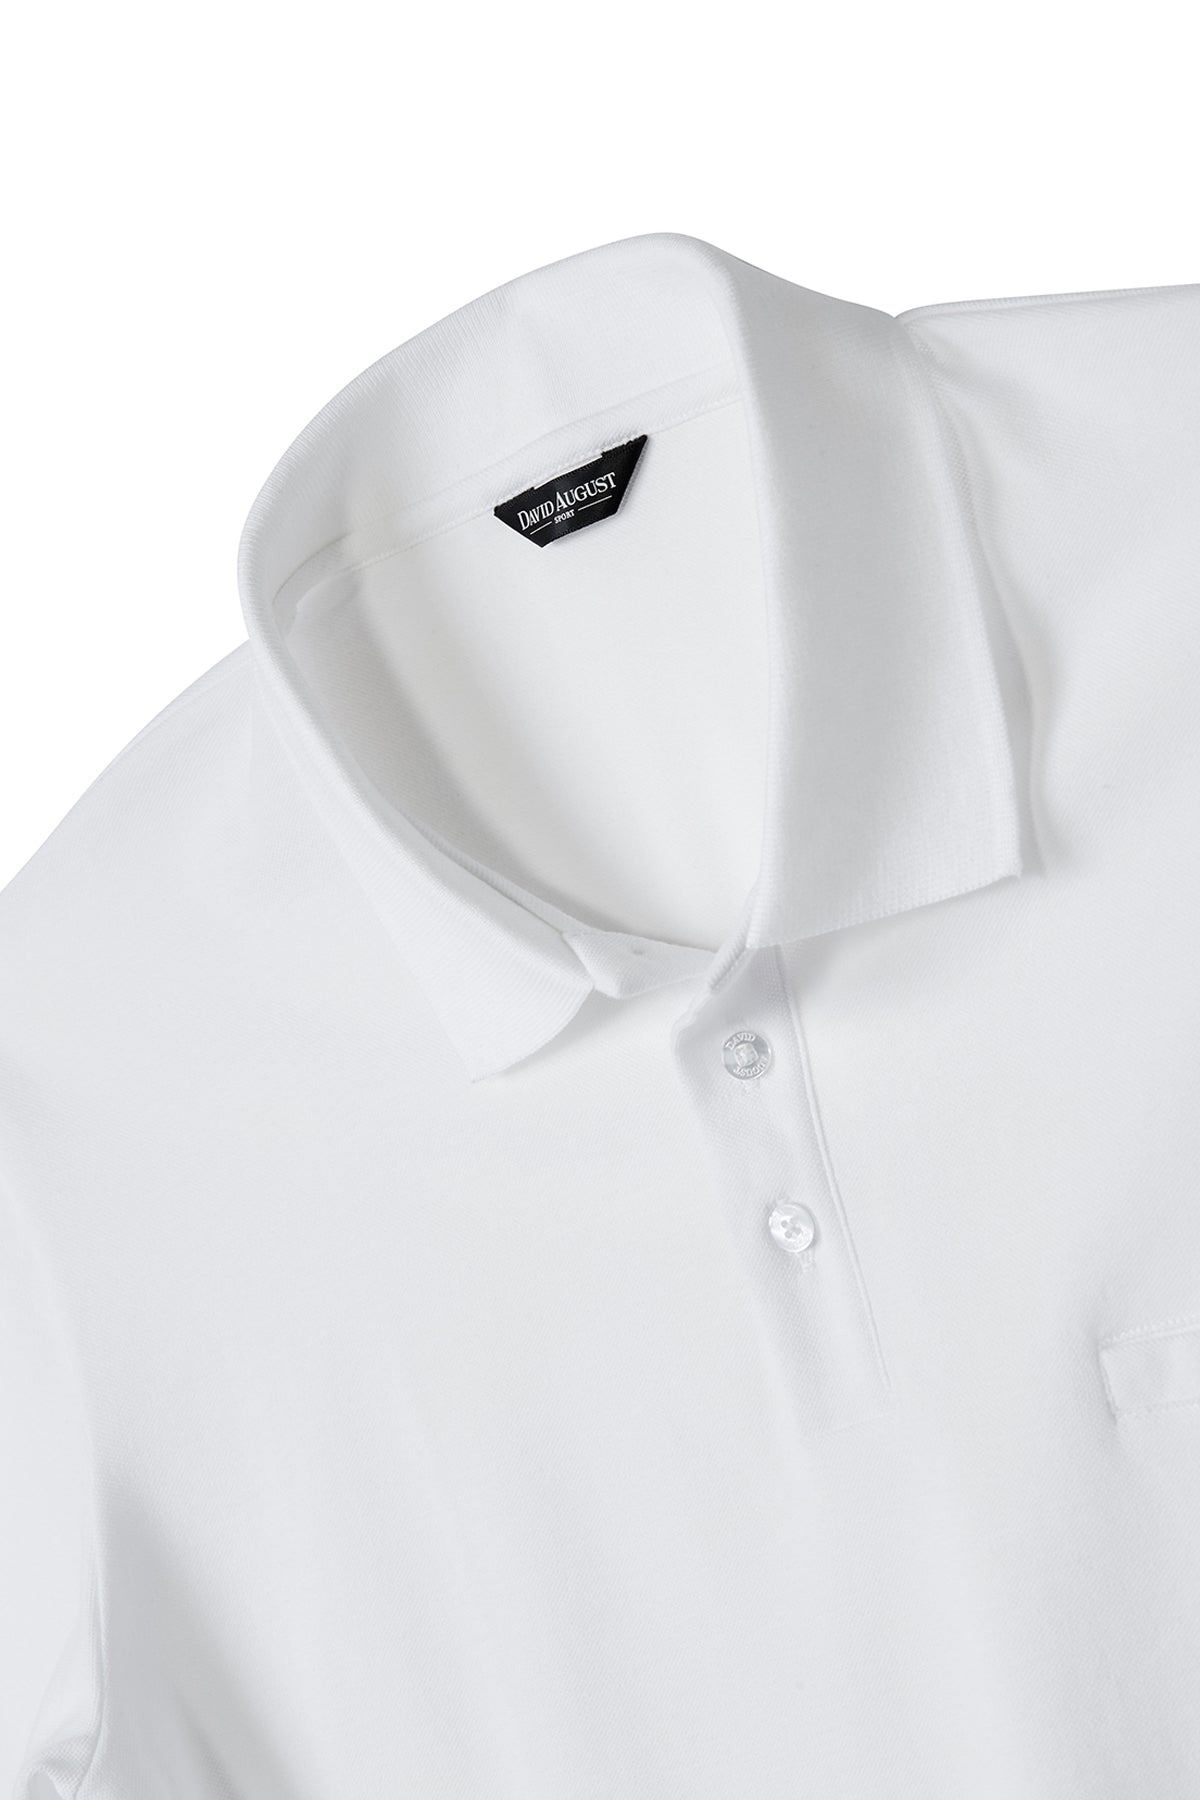 David August Pima Pique Cotton Polo in White